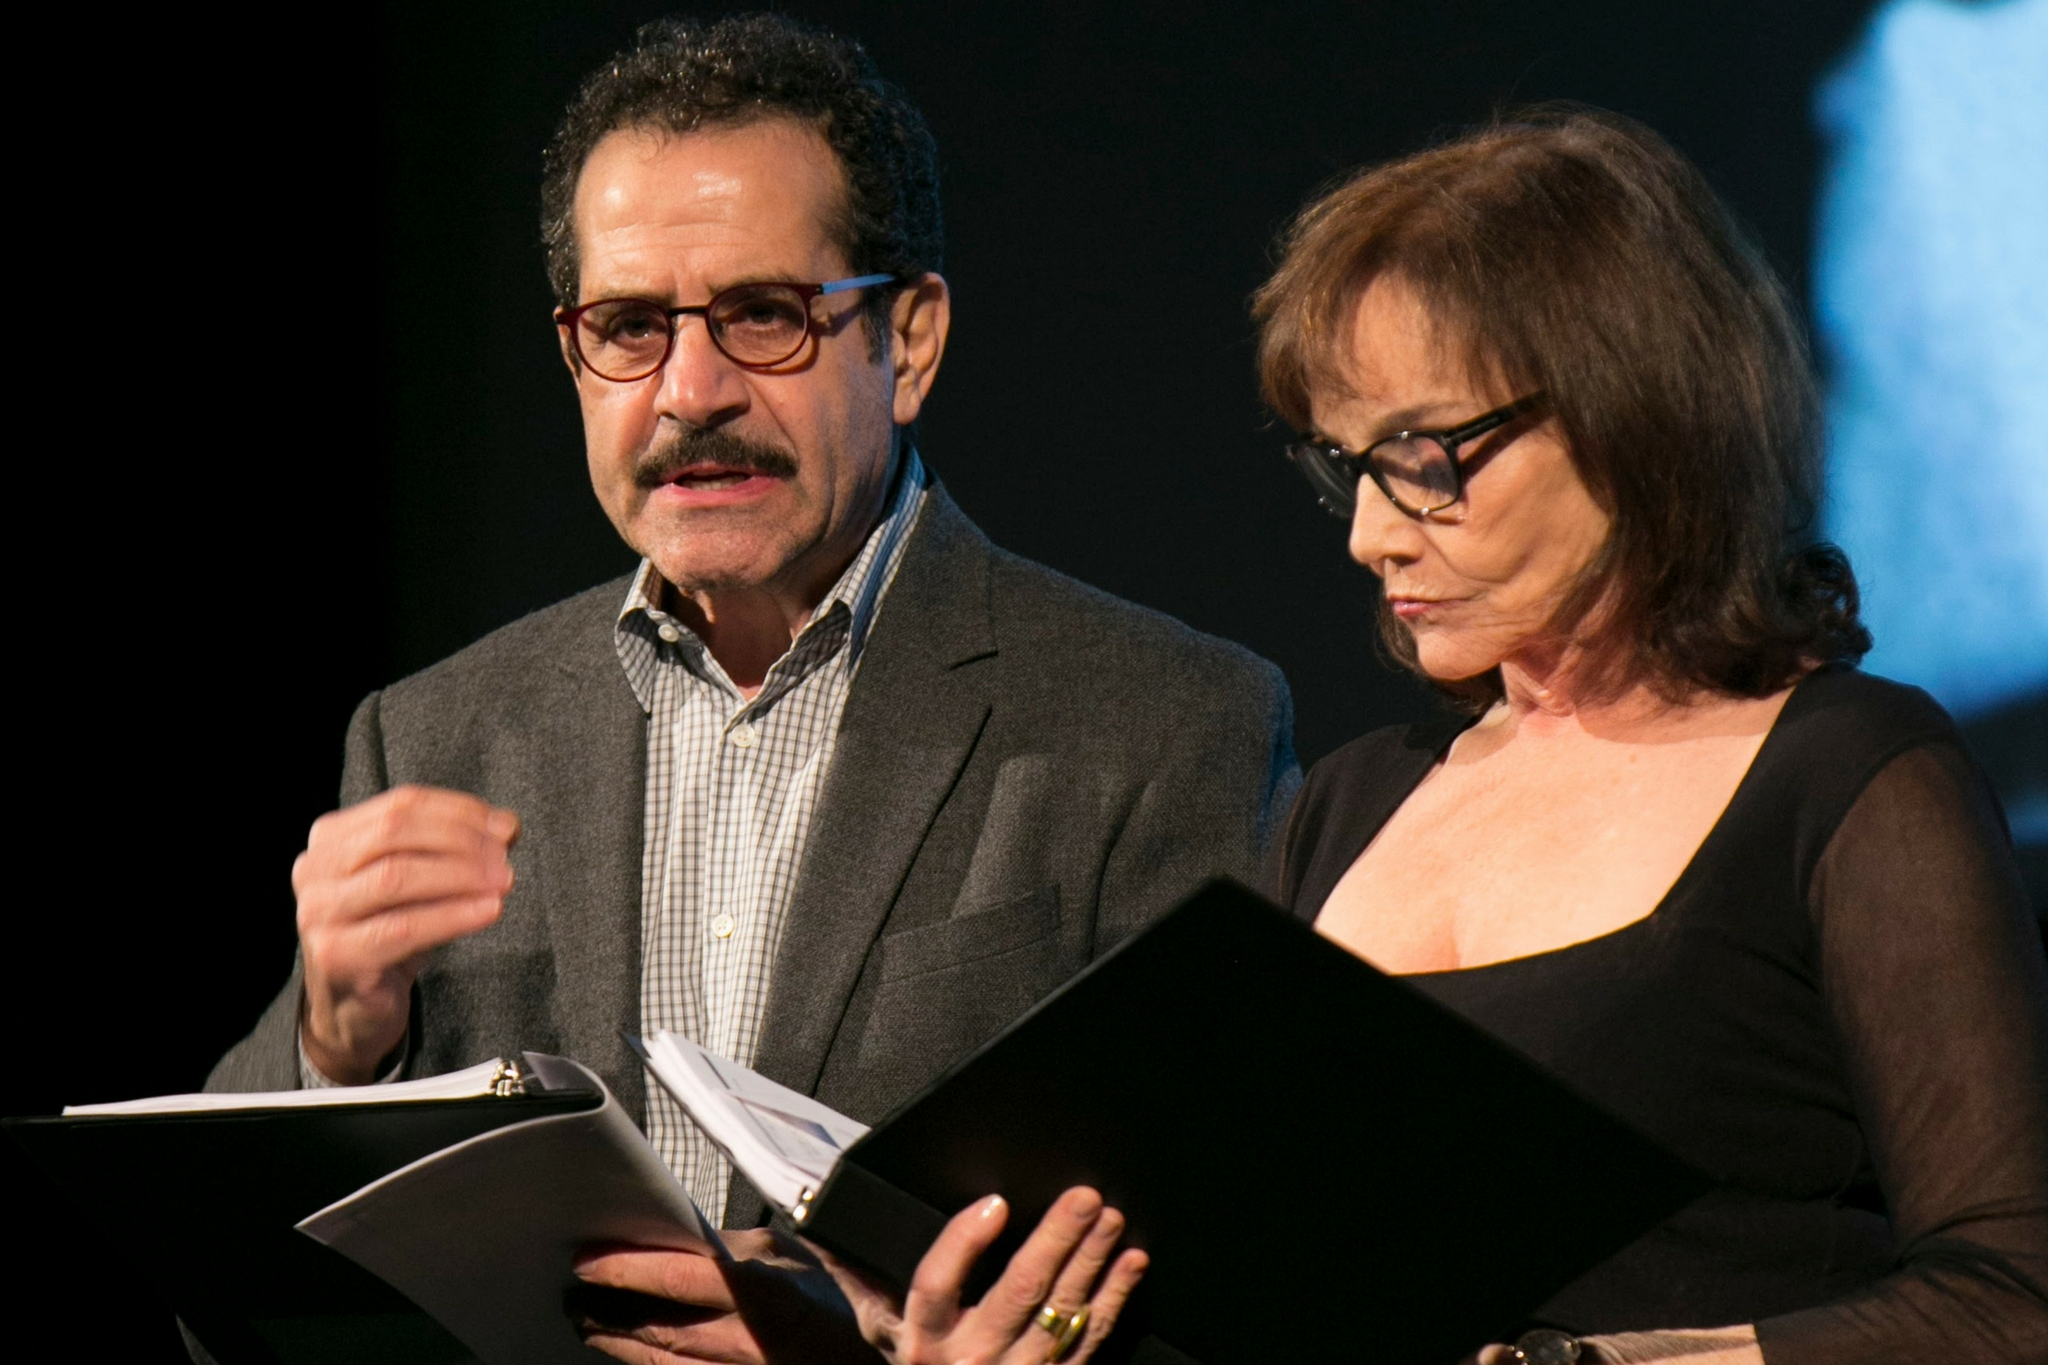 Tony Shalhoub (Man) and Brooke Adams (Woman) in The Betrayal, Theatre in the Rough, 2017-Photo by Evgenia Eliseeva